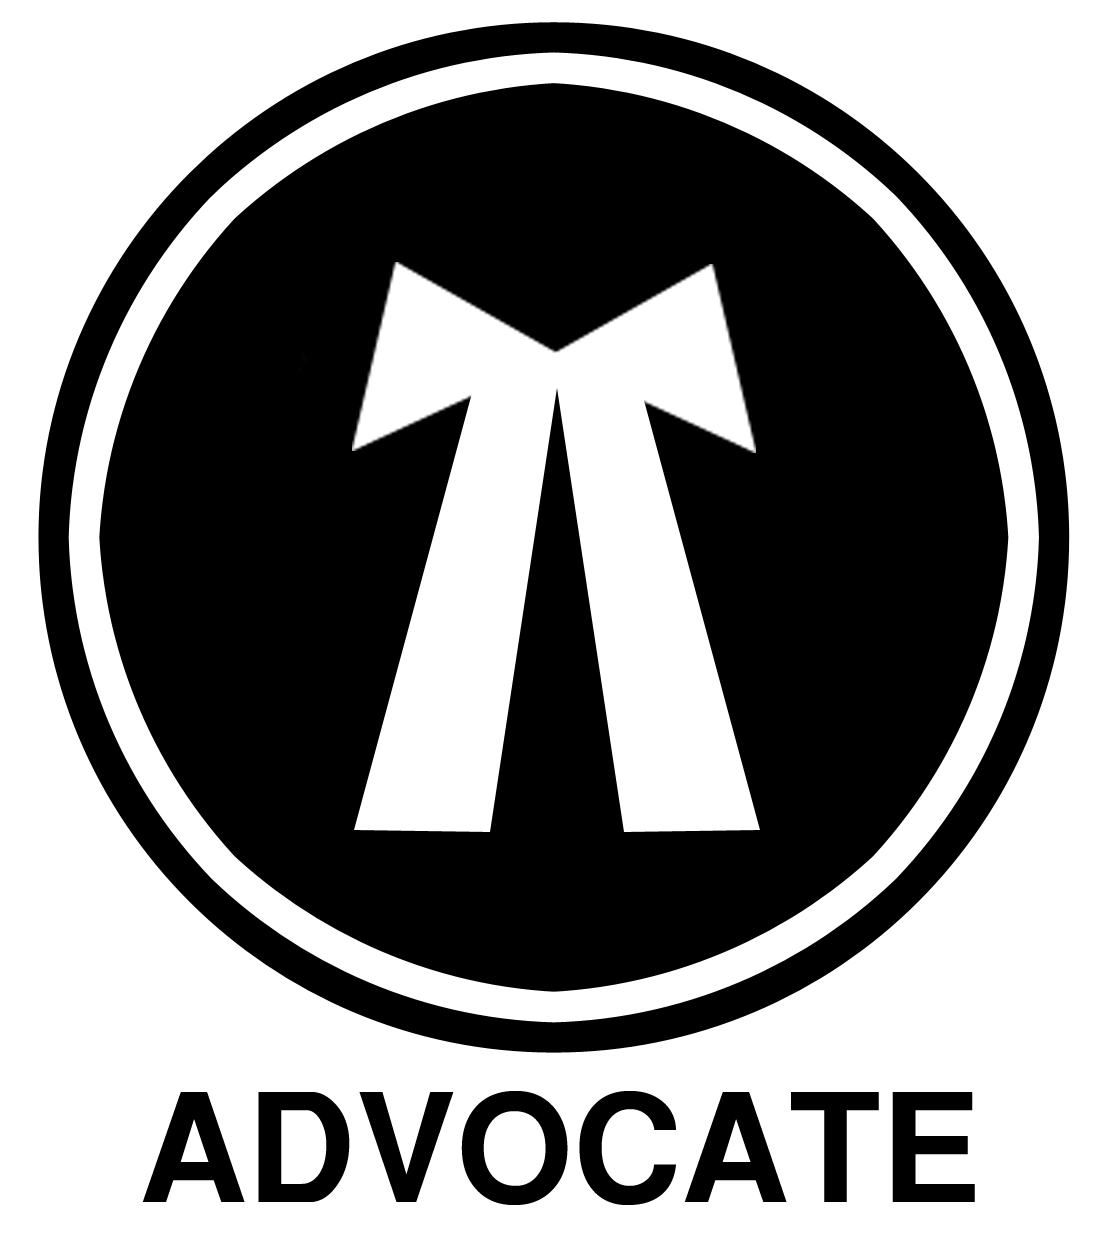 Gags Space Advocate Symbol Logo Image Ciclavia Pinterest